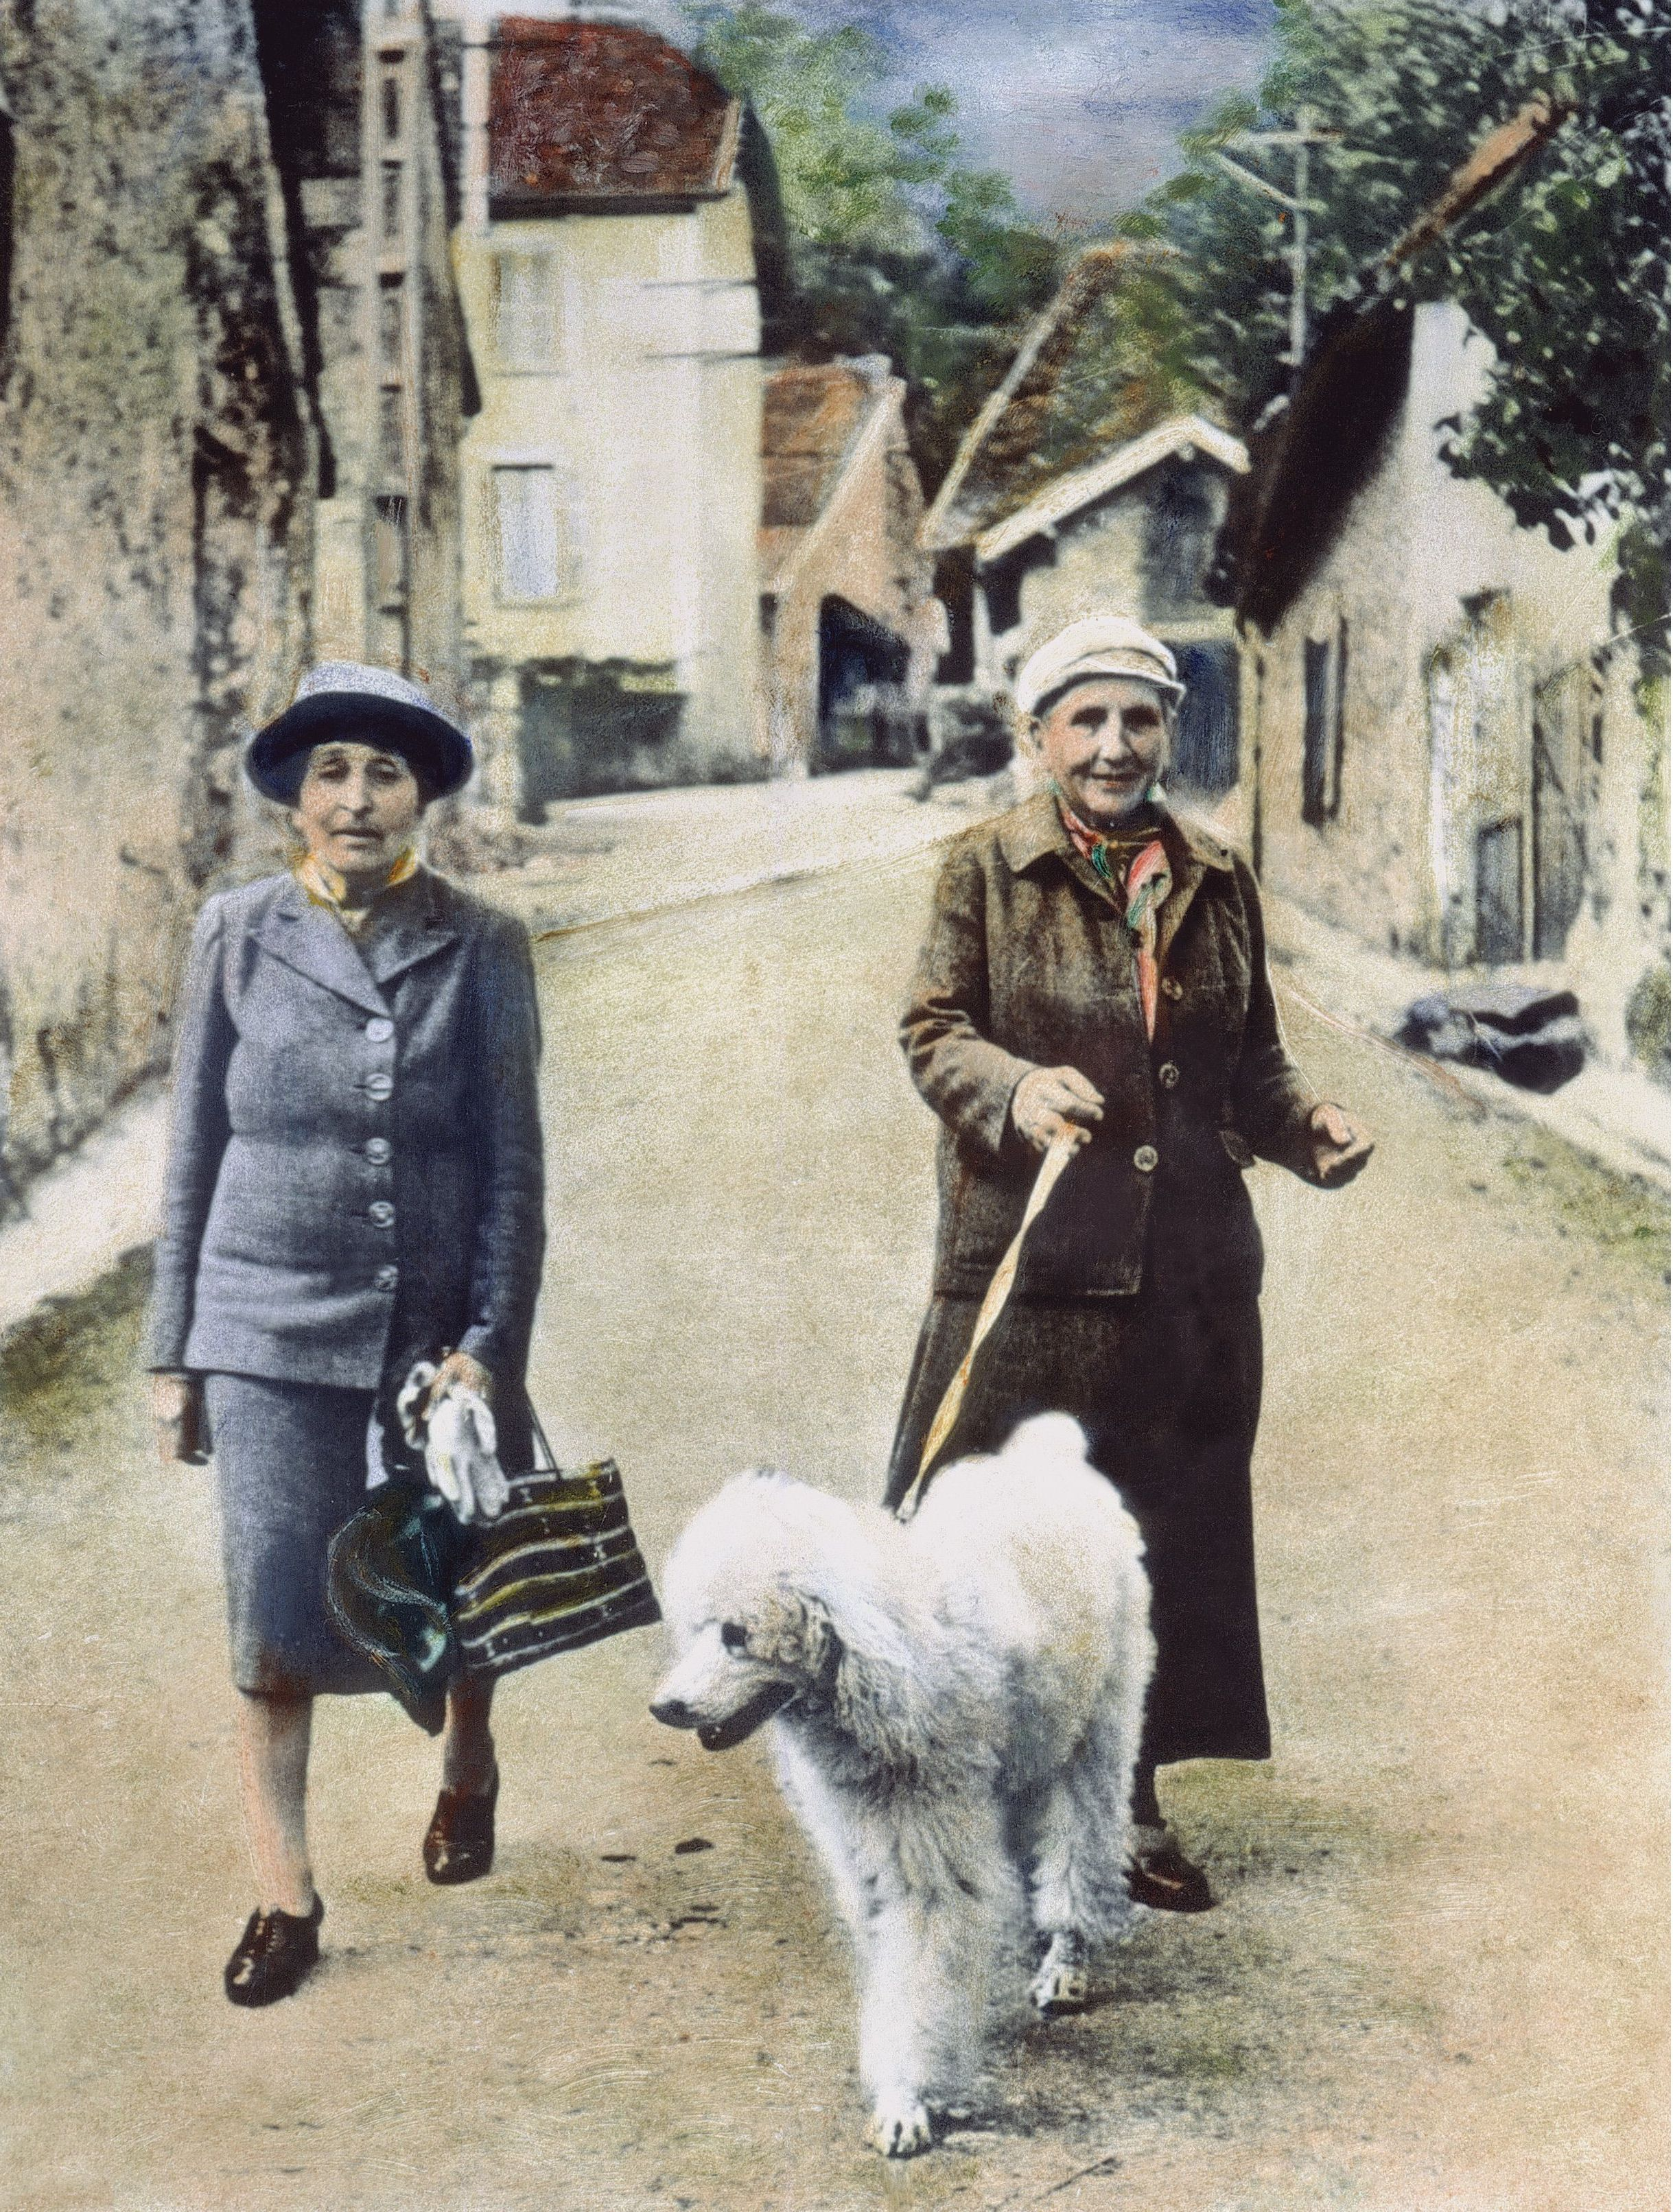 Stein And Toklas, 1944. American Writer Gertrude Stein (1874-1946) In Southeastern France With Her Companion, Alice B. Toklas (Left), September 1944. Oil Over A Photograph. 1944